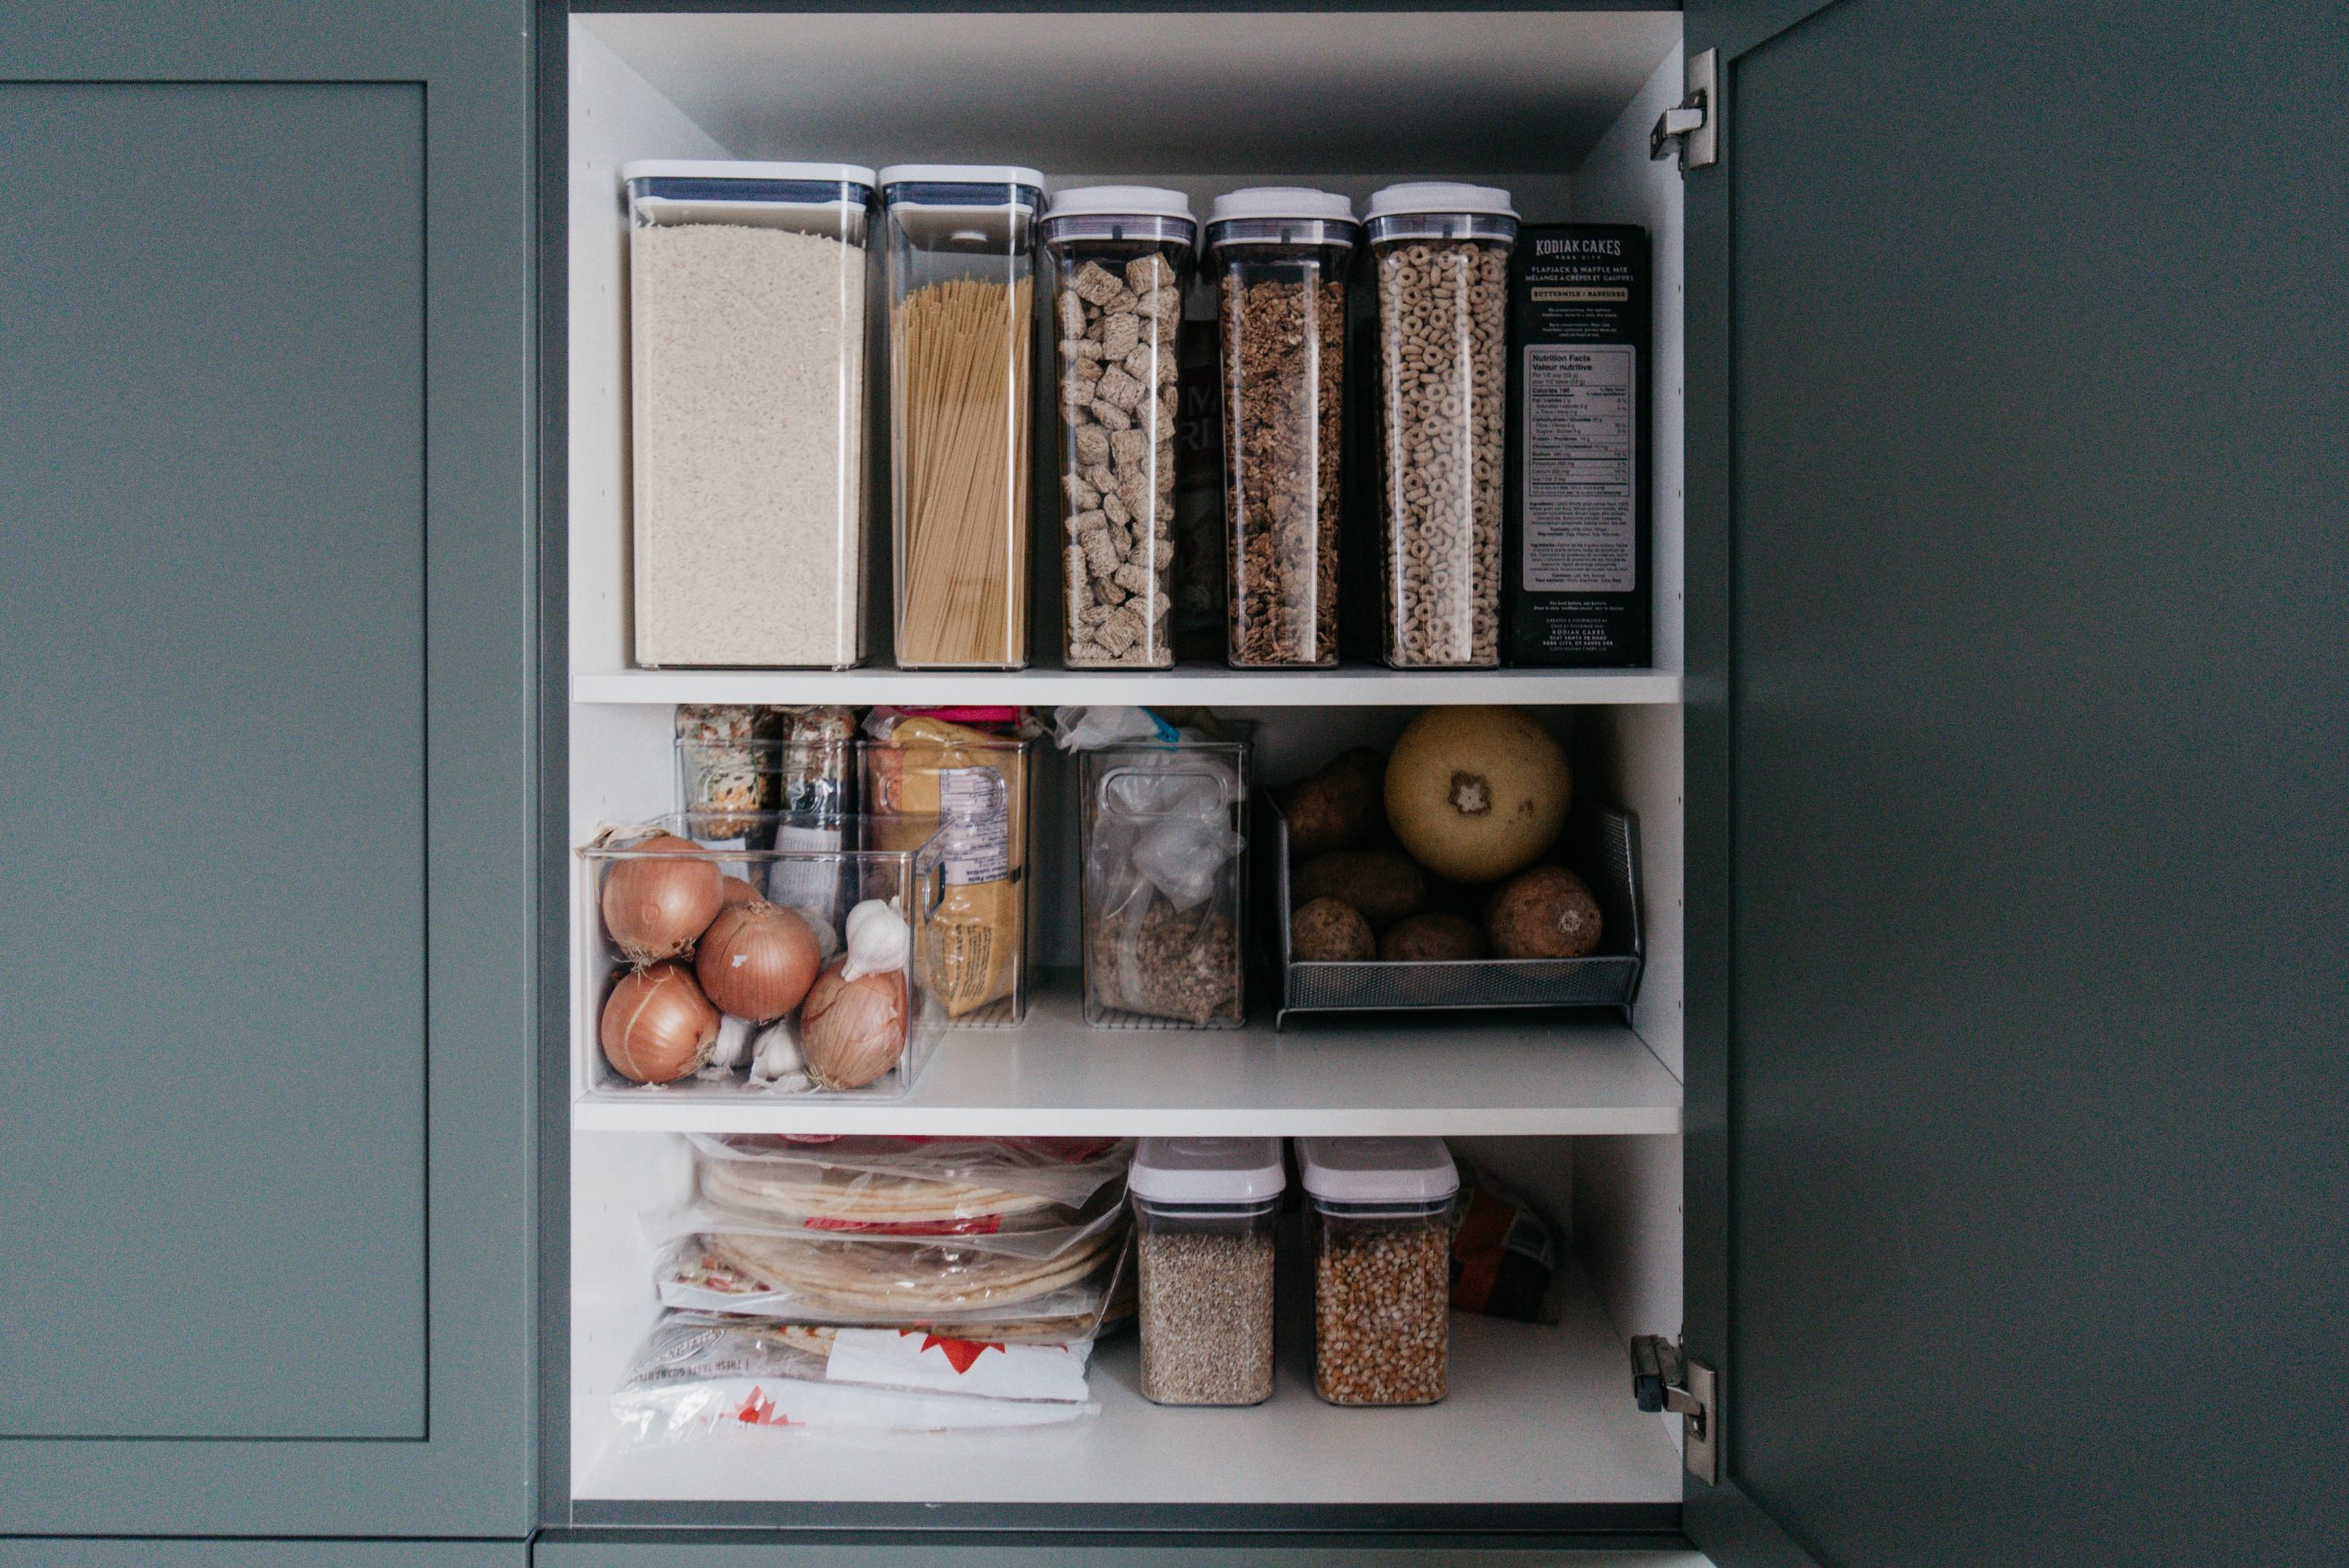 Pantry organization ideas (and kitchen organizing ideas for every cupboard!)